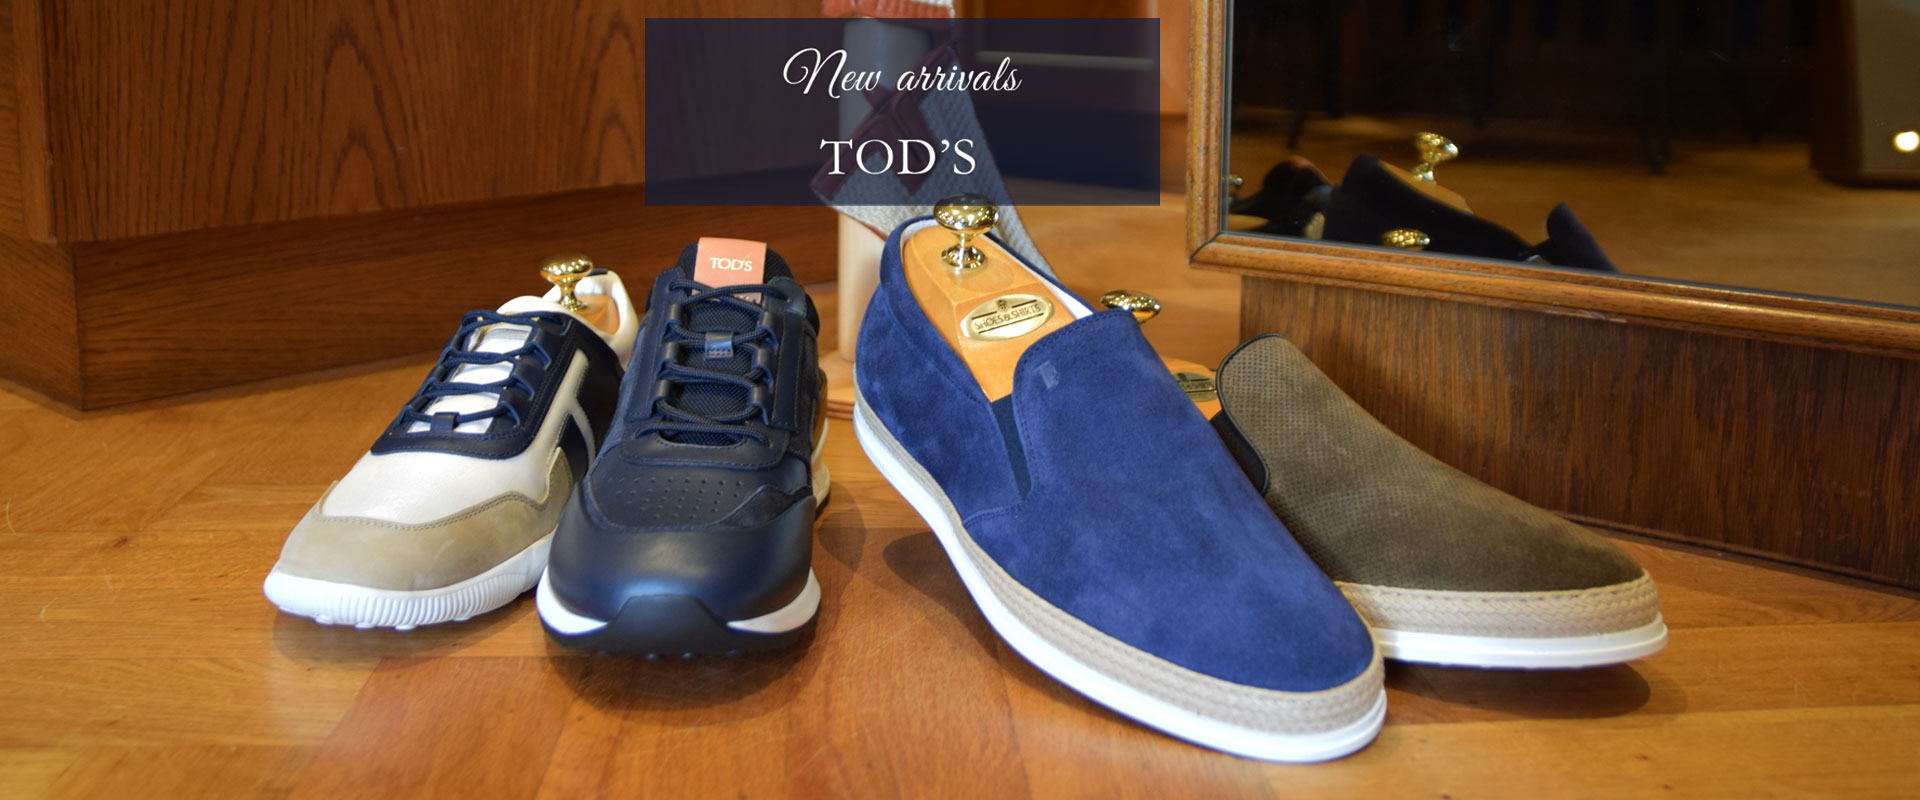 Shoes & Shirts for High end Shoes, Shirts and Accessories